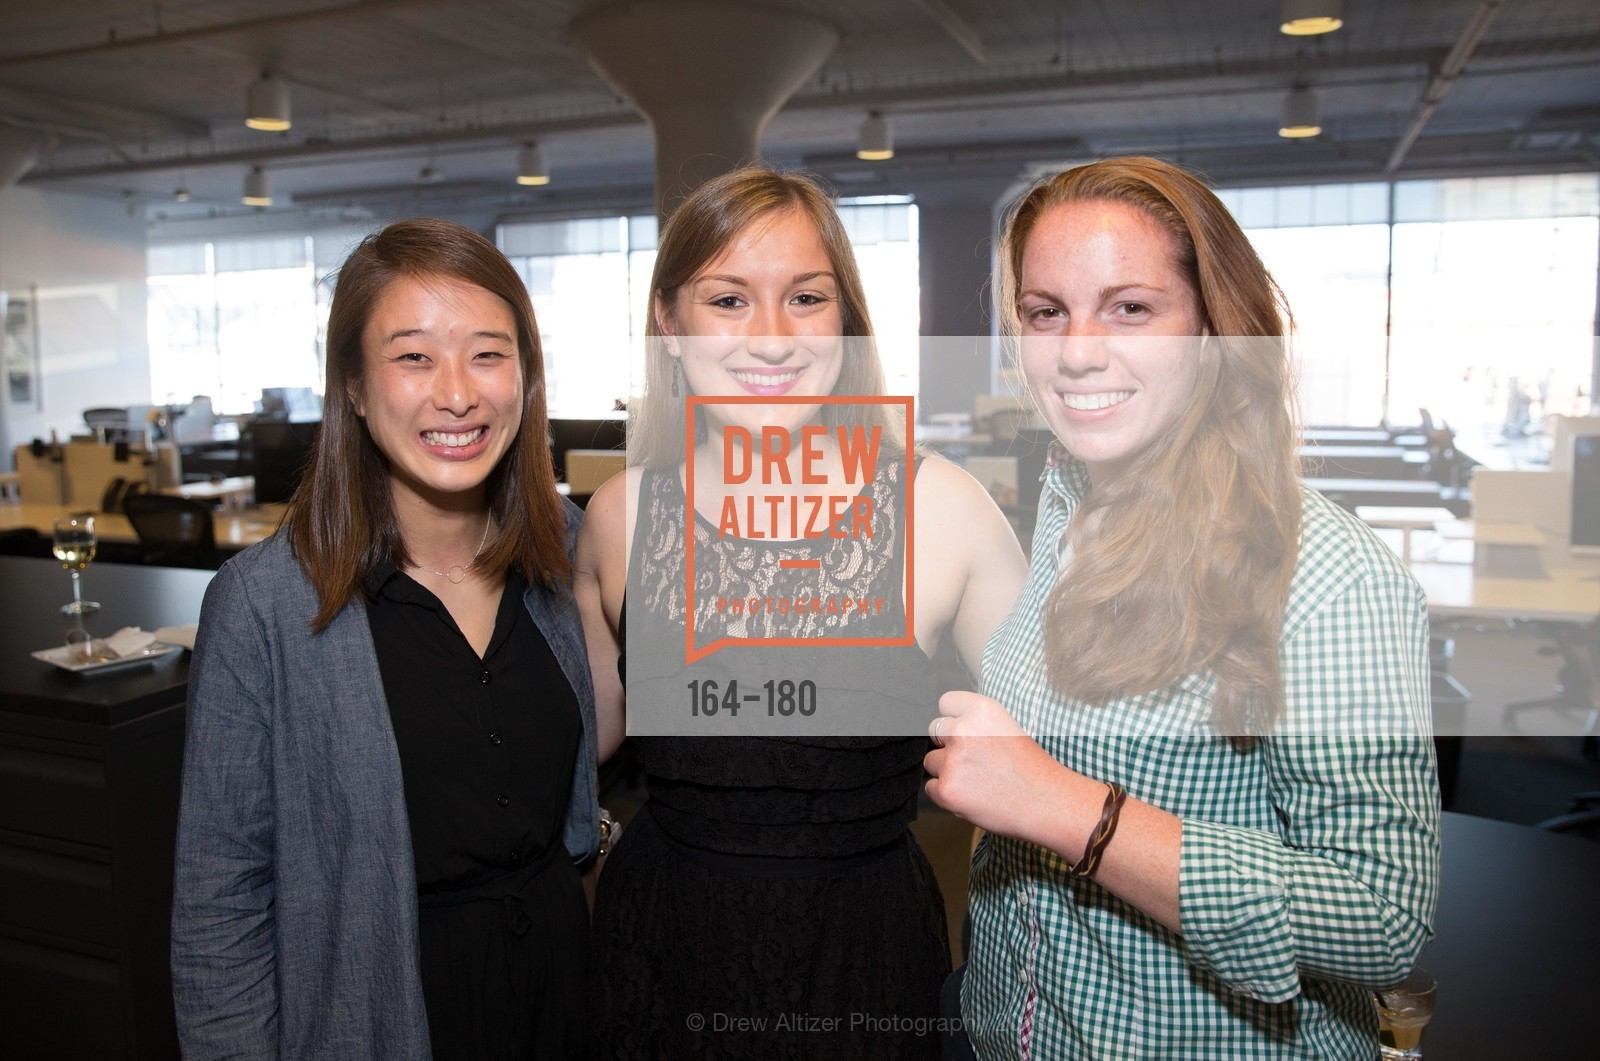 Chrissy Lee, Lydia Belanger, Megan Logan, Wired Magazine July Cover Release Celebration at New Wired Office, Wired Magazine Offices. 520 3rd Street, June 24th, 2015,Drew Altizer, Drew Altizer Photography, full-service agency, private events, San Francisco photographer, photographer california